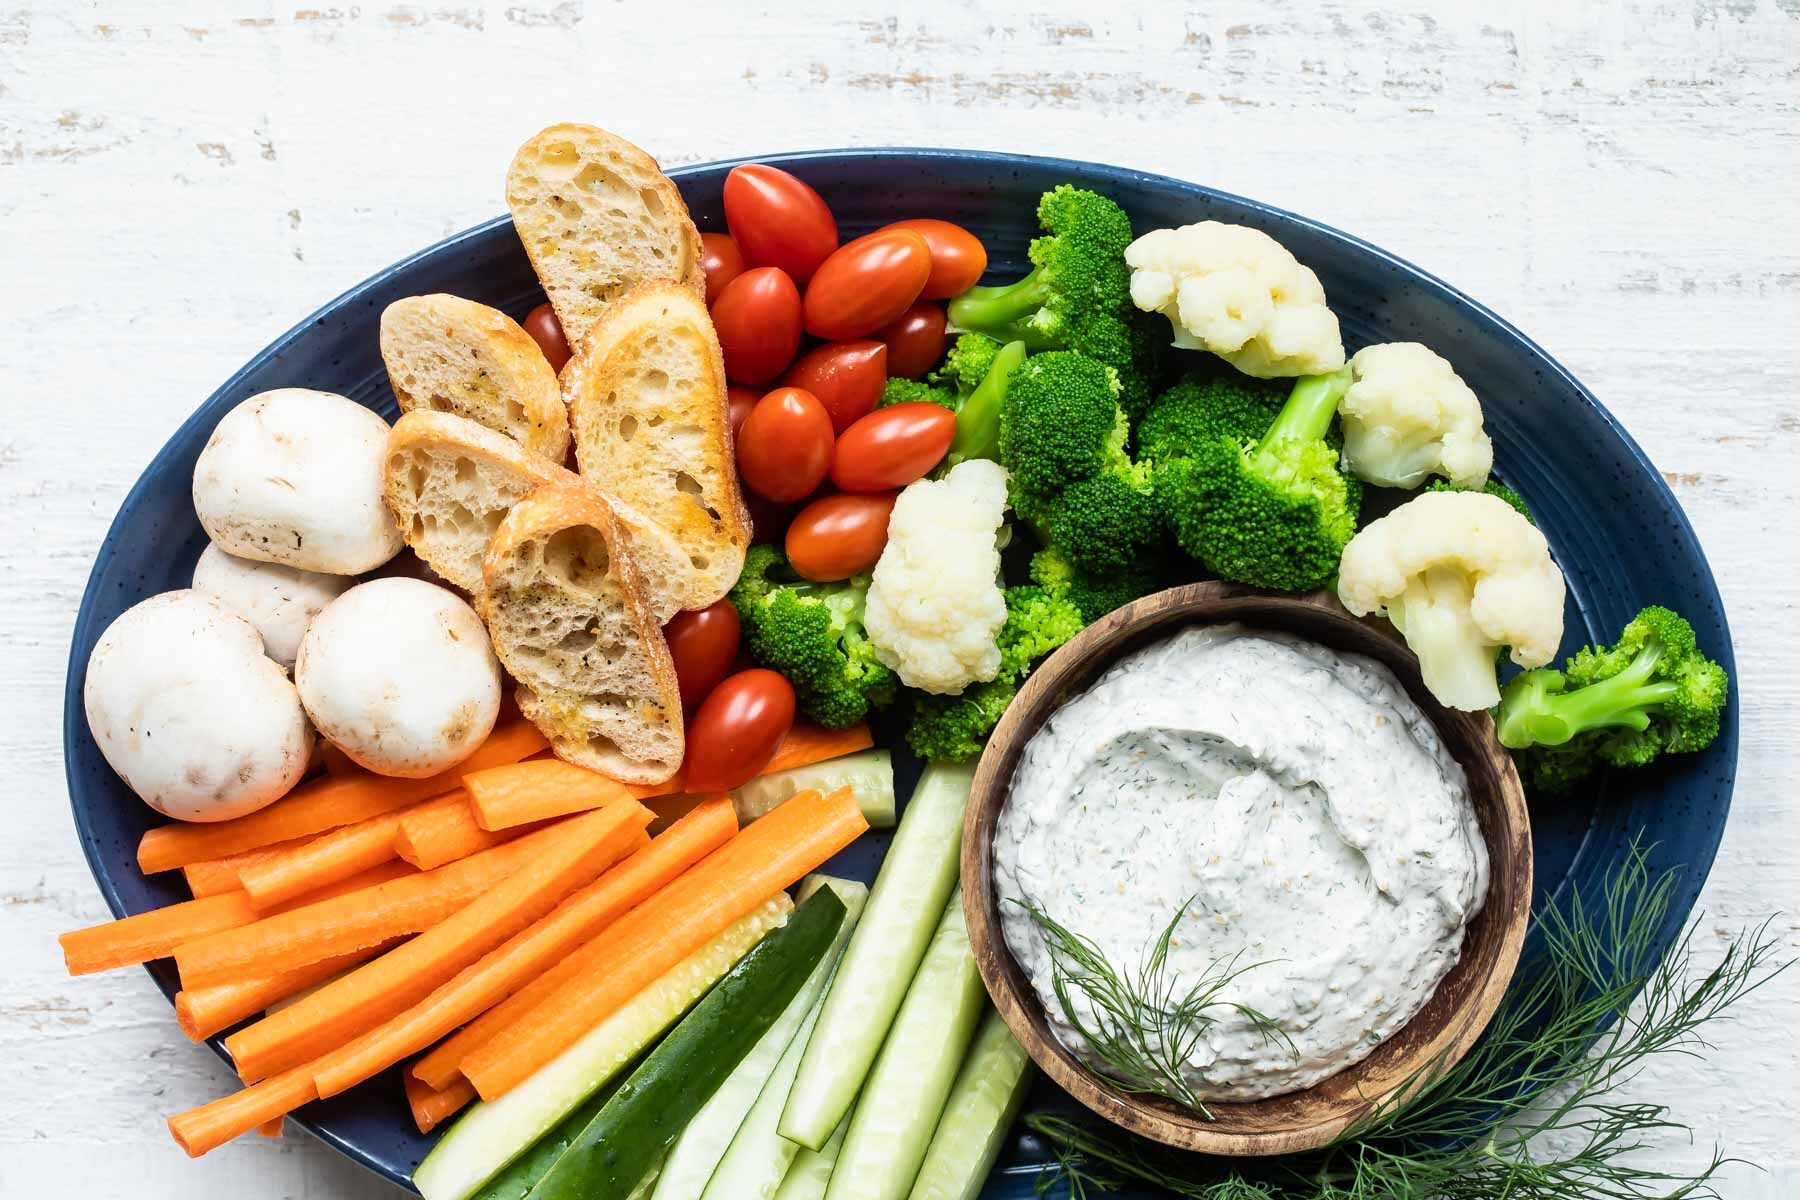 A platter with dill dip and fresh vegetables.